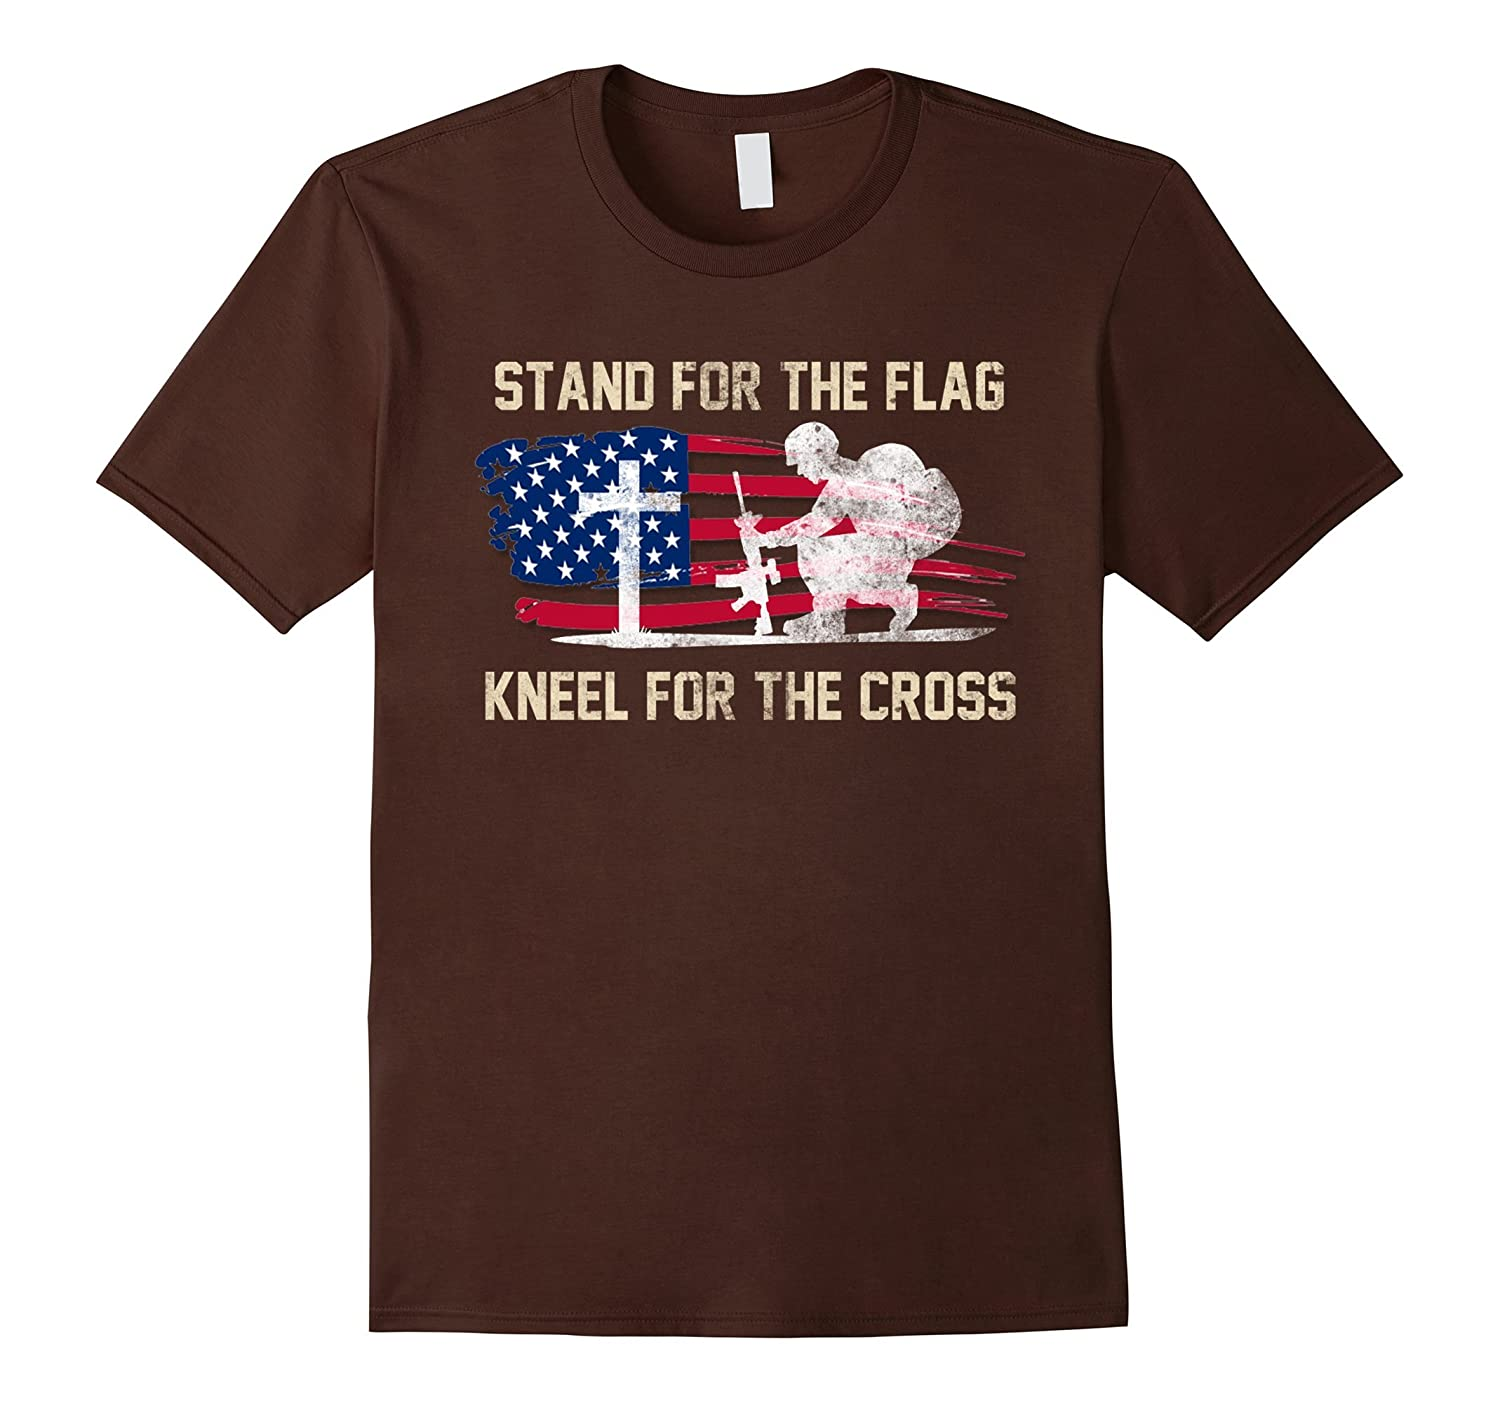 Stand For The Flag, Kneel For the Cross – Veterans Day Shirt